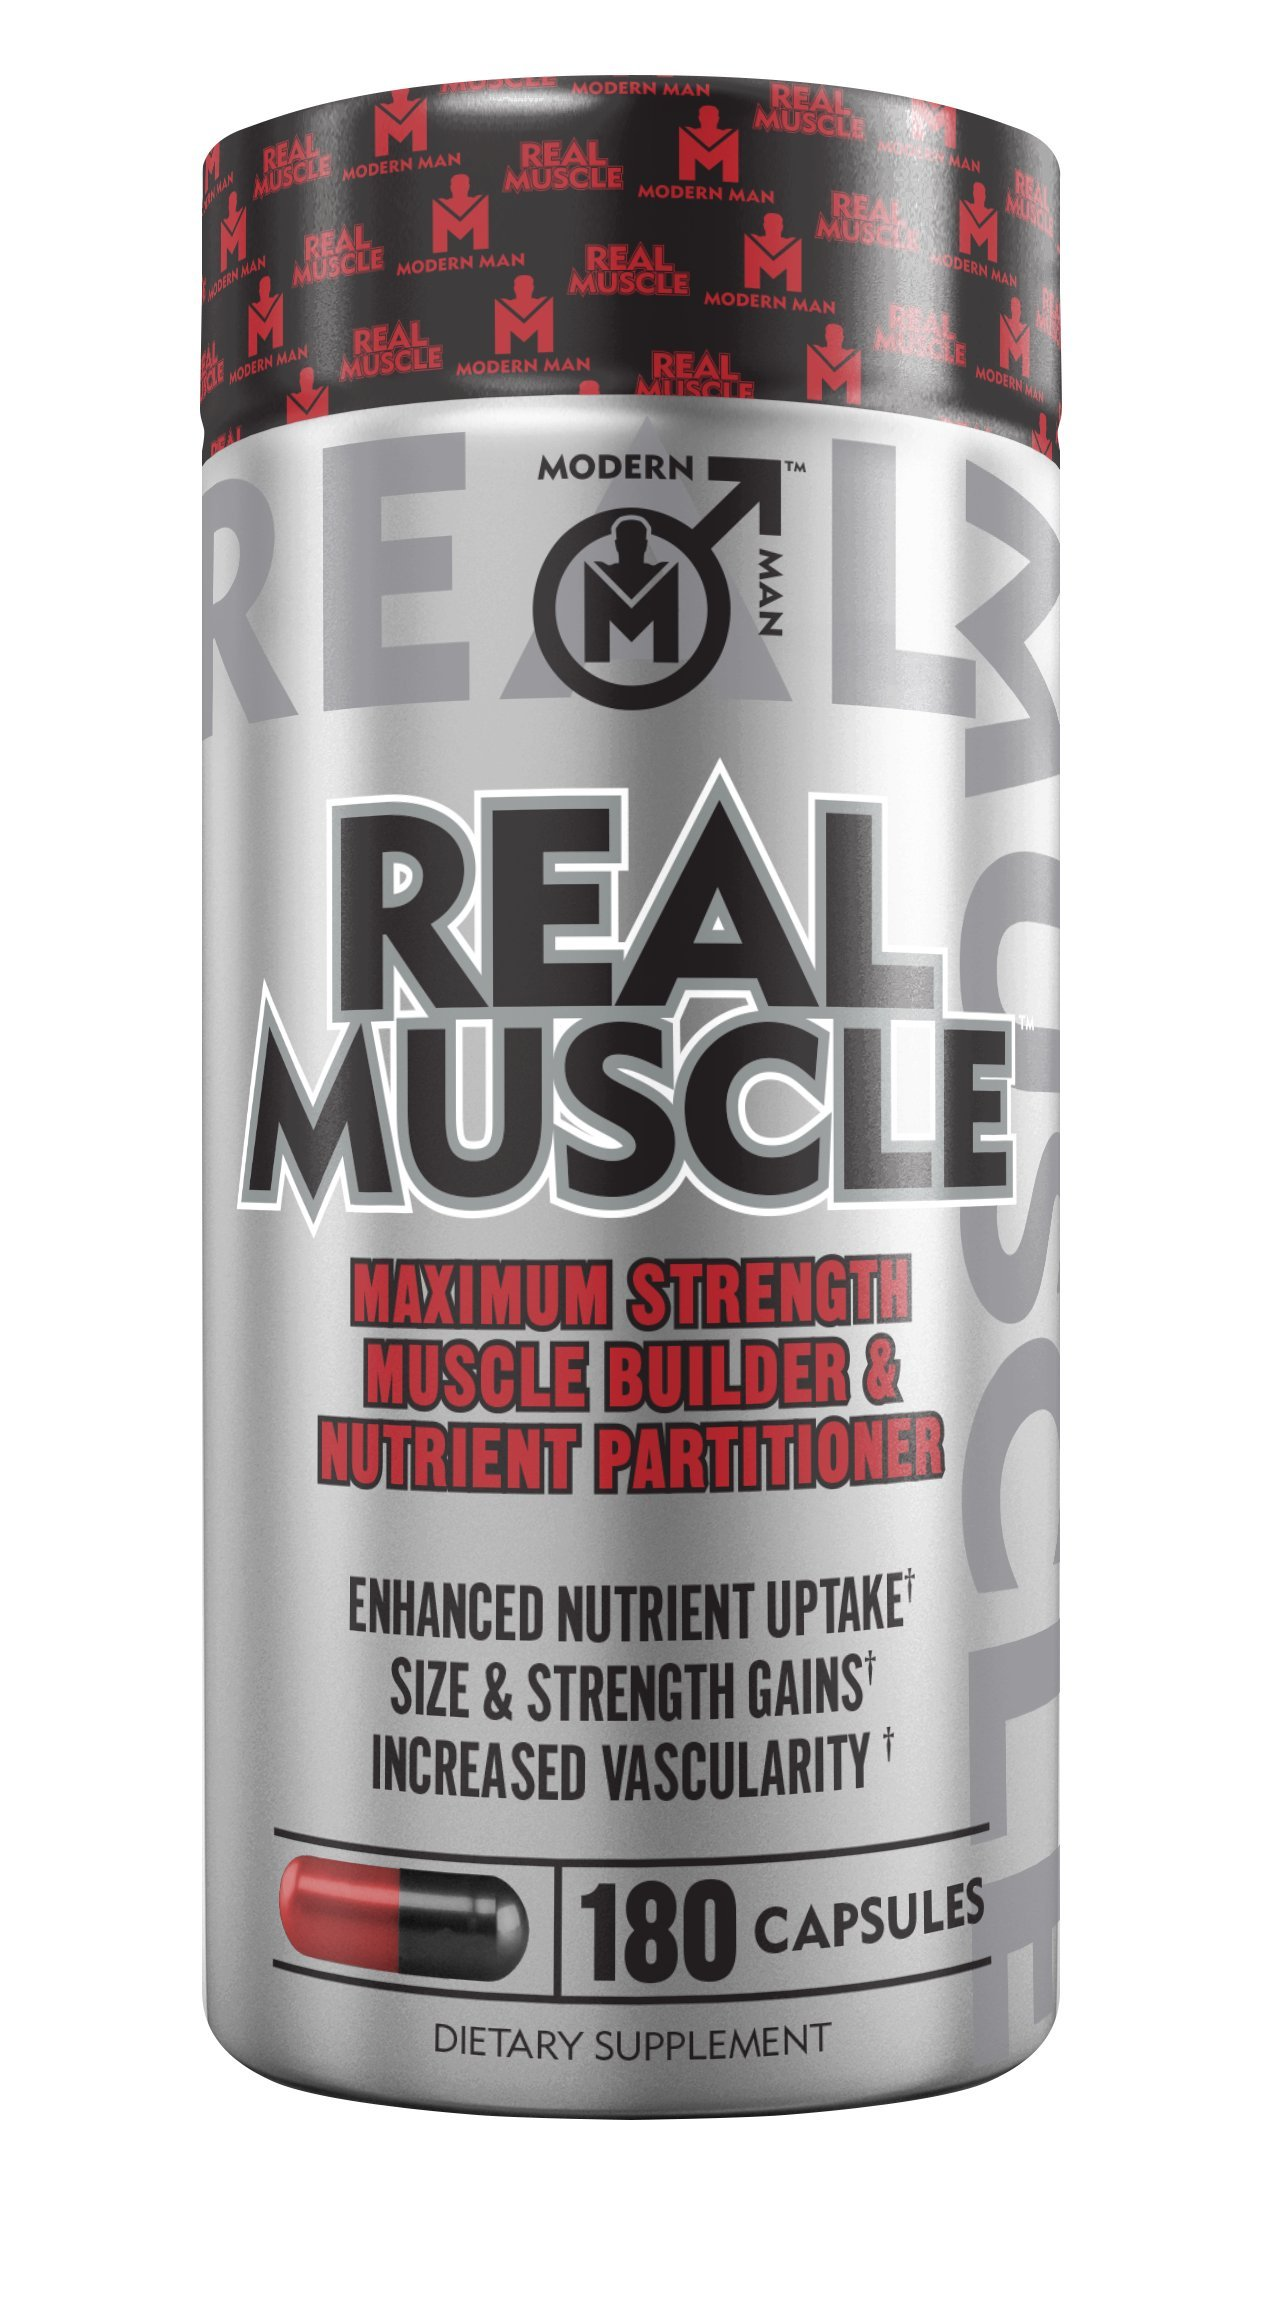 REAL MUSCLE BUILDER ? Mass Building Laxogenin Supplement for Men ? Anabolic Weight Gainer & Nutrient Partitioner for Muscle Growth & Fat Loss | Clear Plateaus Fast | Serious Bodybuilding |180 Pills by Modern Man Products